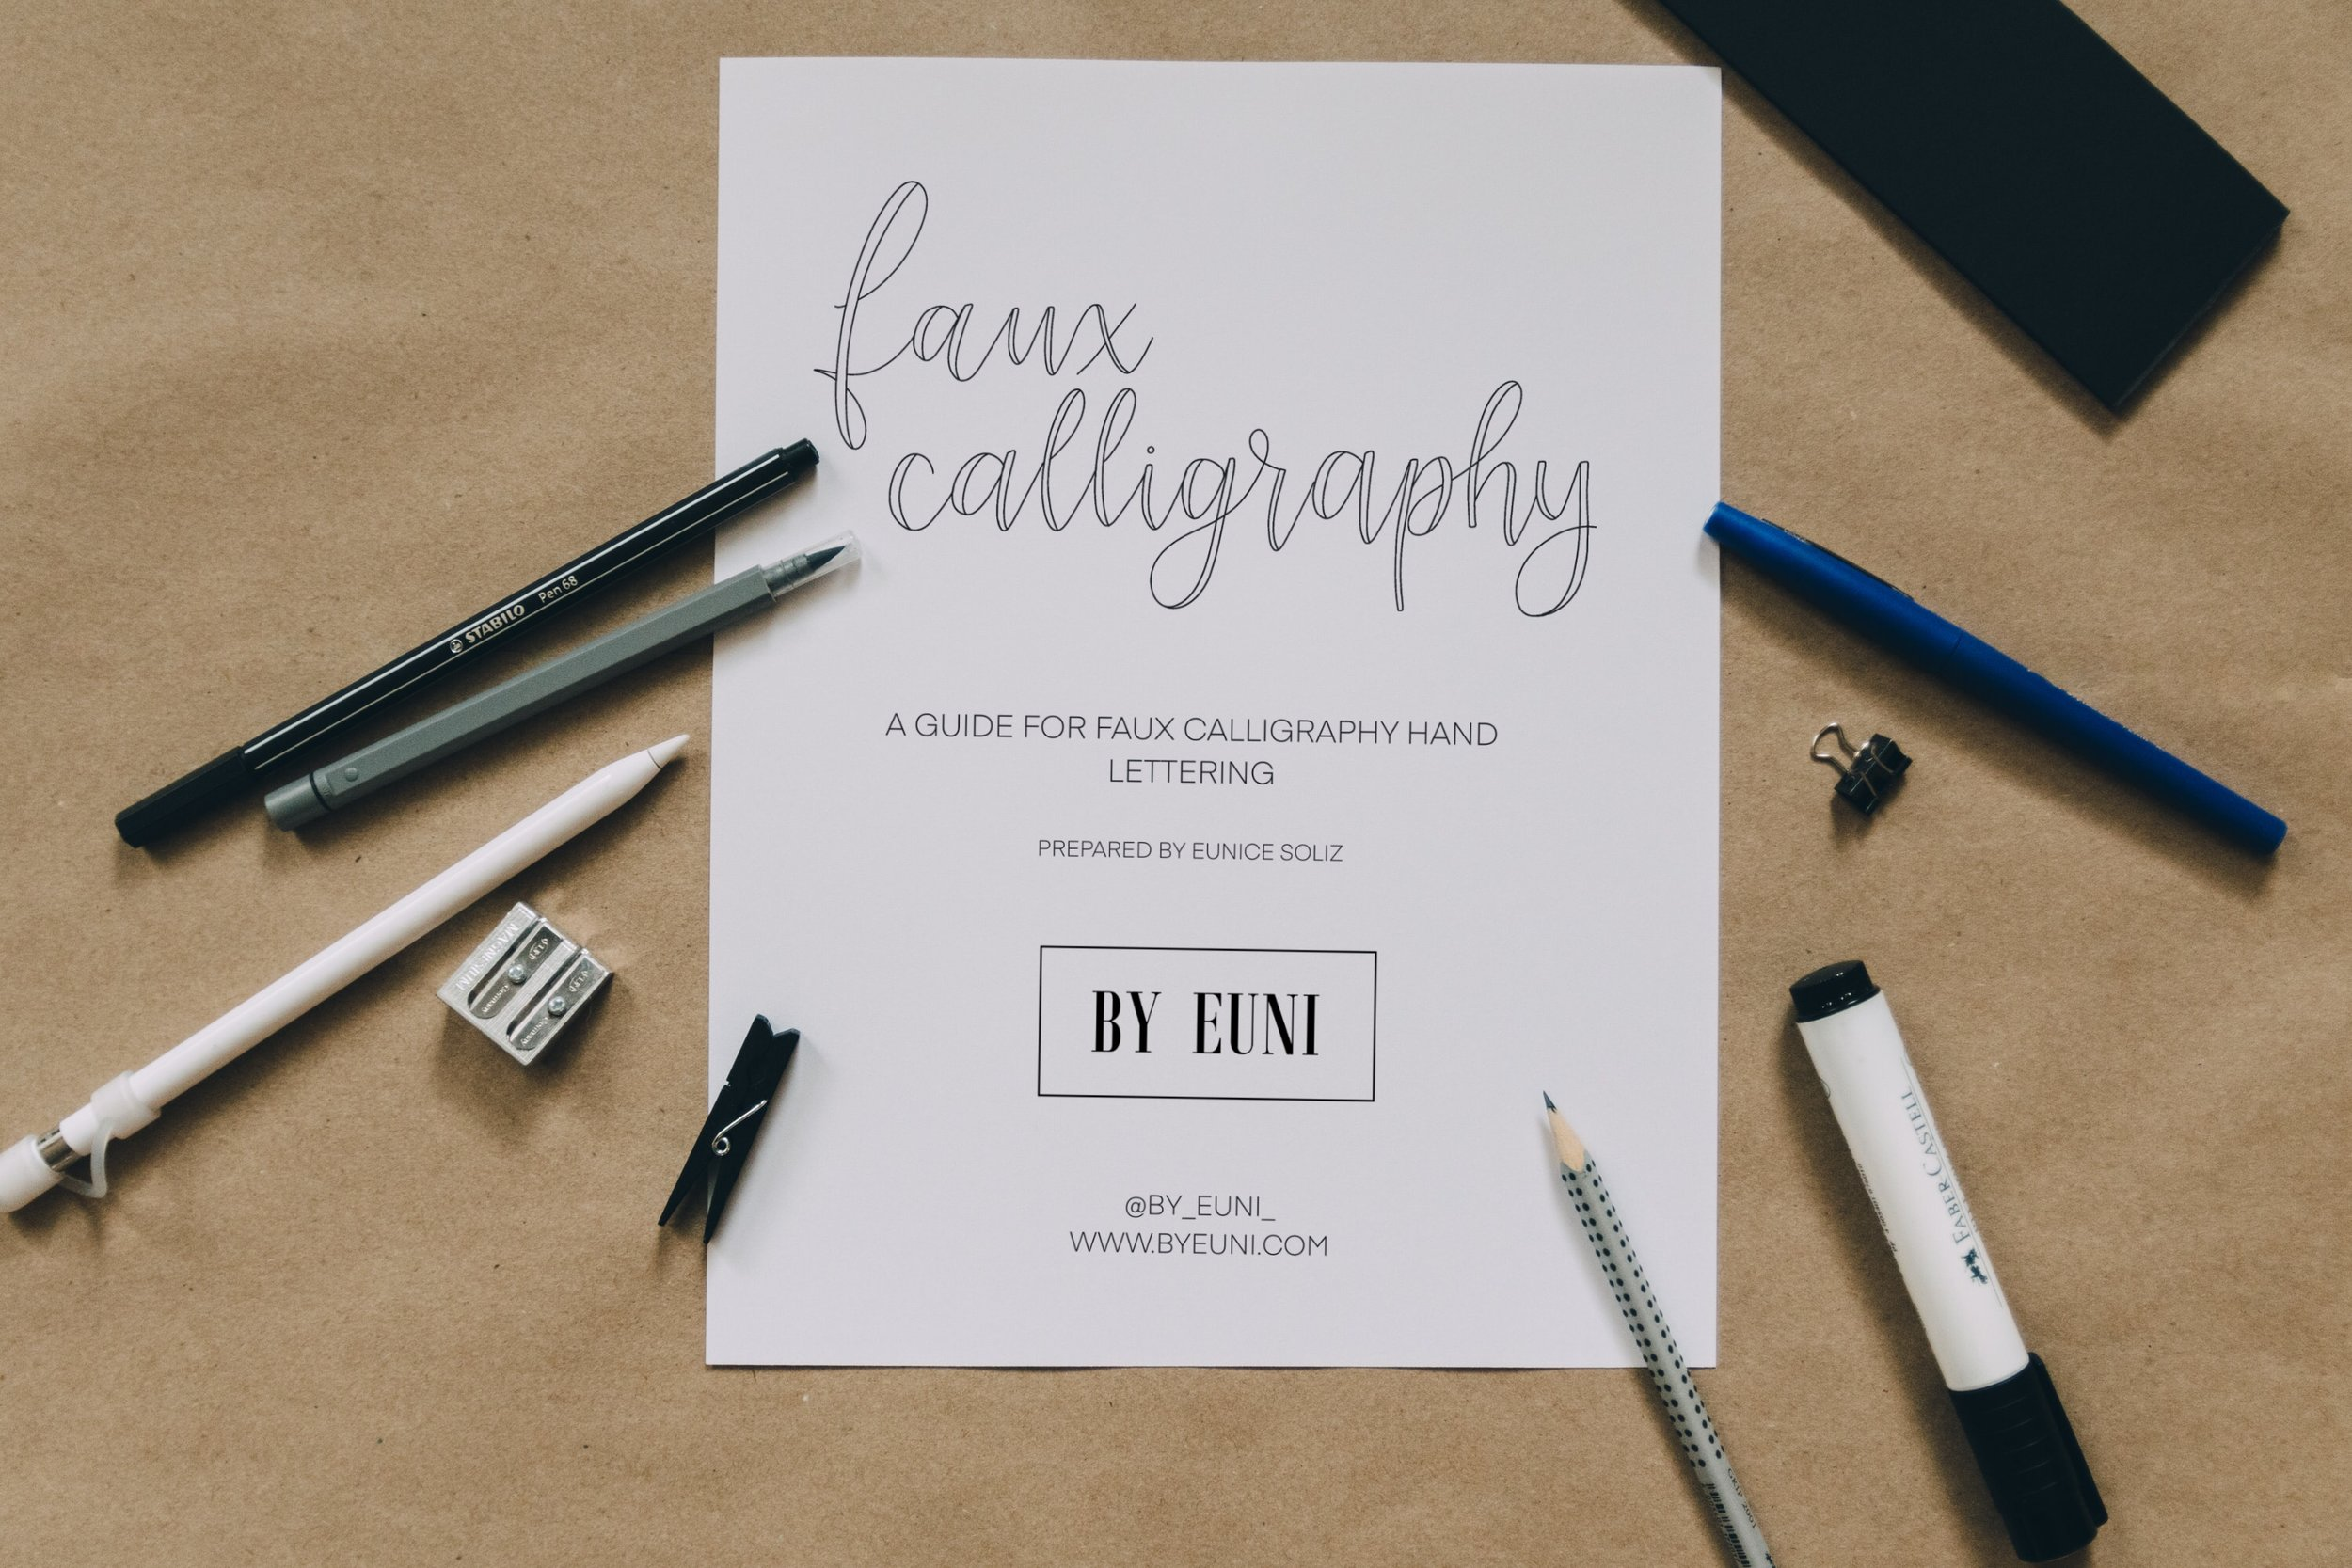 Faux Calligraphy Guide   You can use any pen, marker, monoline tool, etc to create faux calligraphy. It is the way that I began my calligraphy journey and a style of hand lettering I still use today.